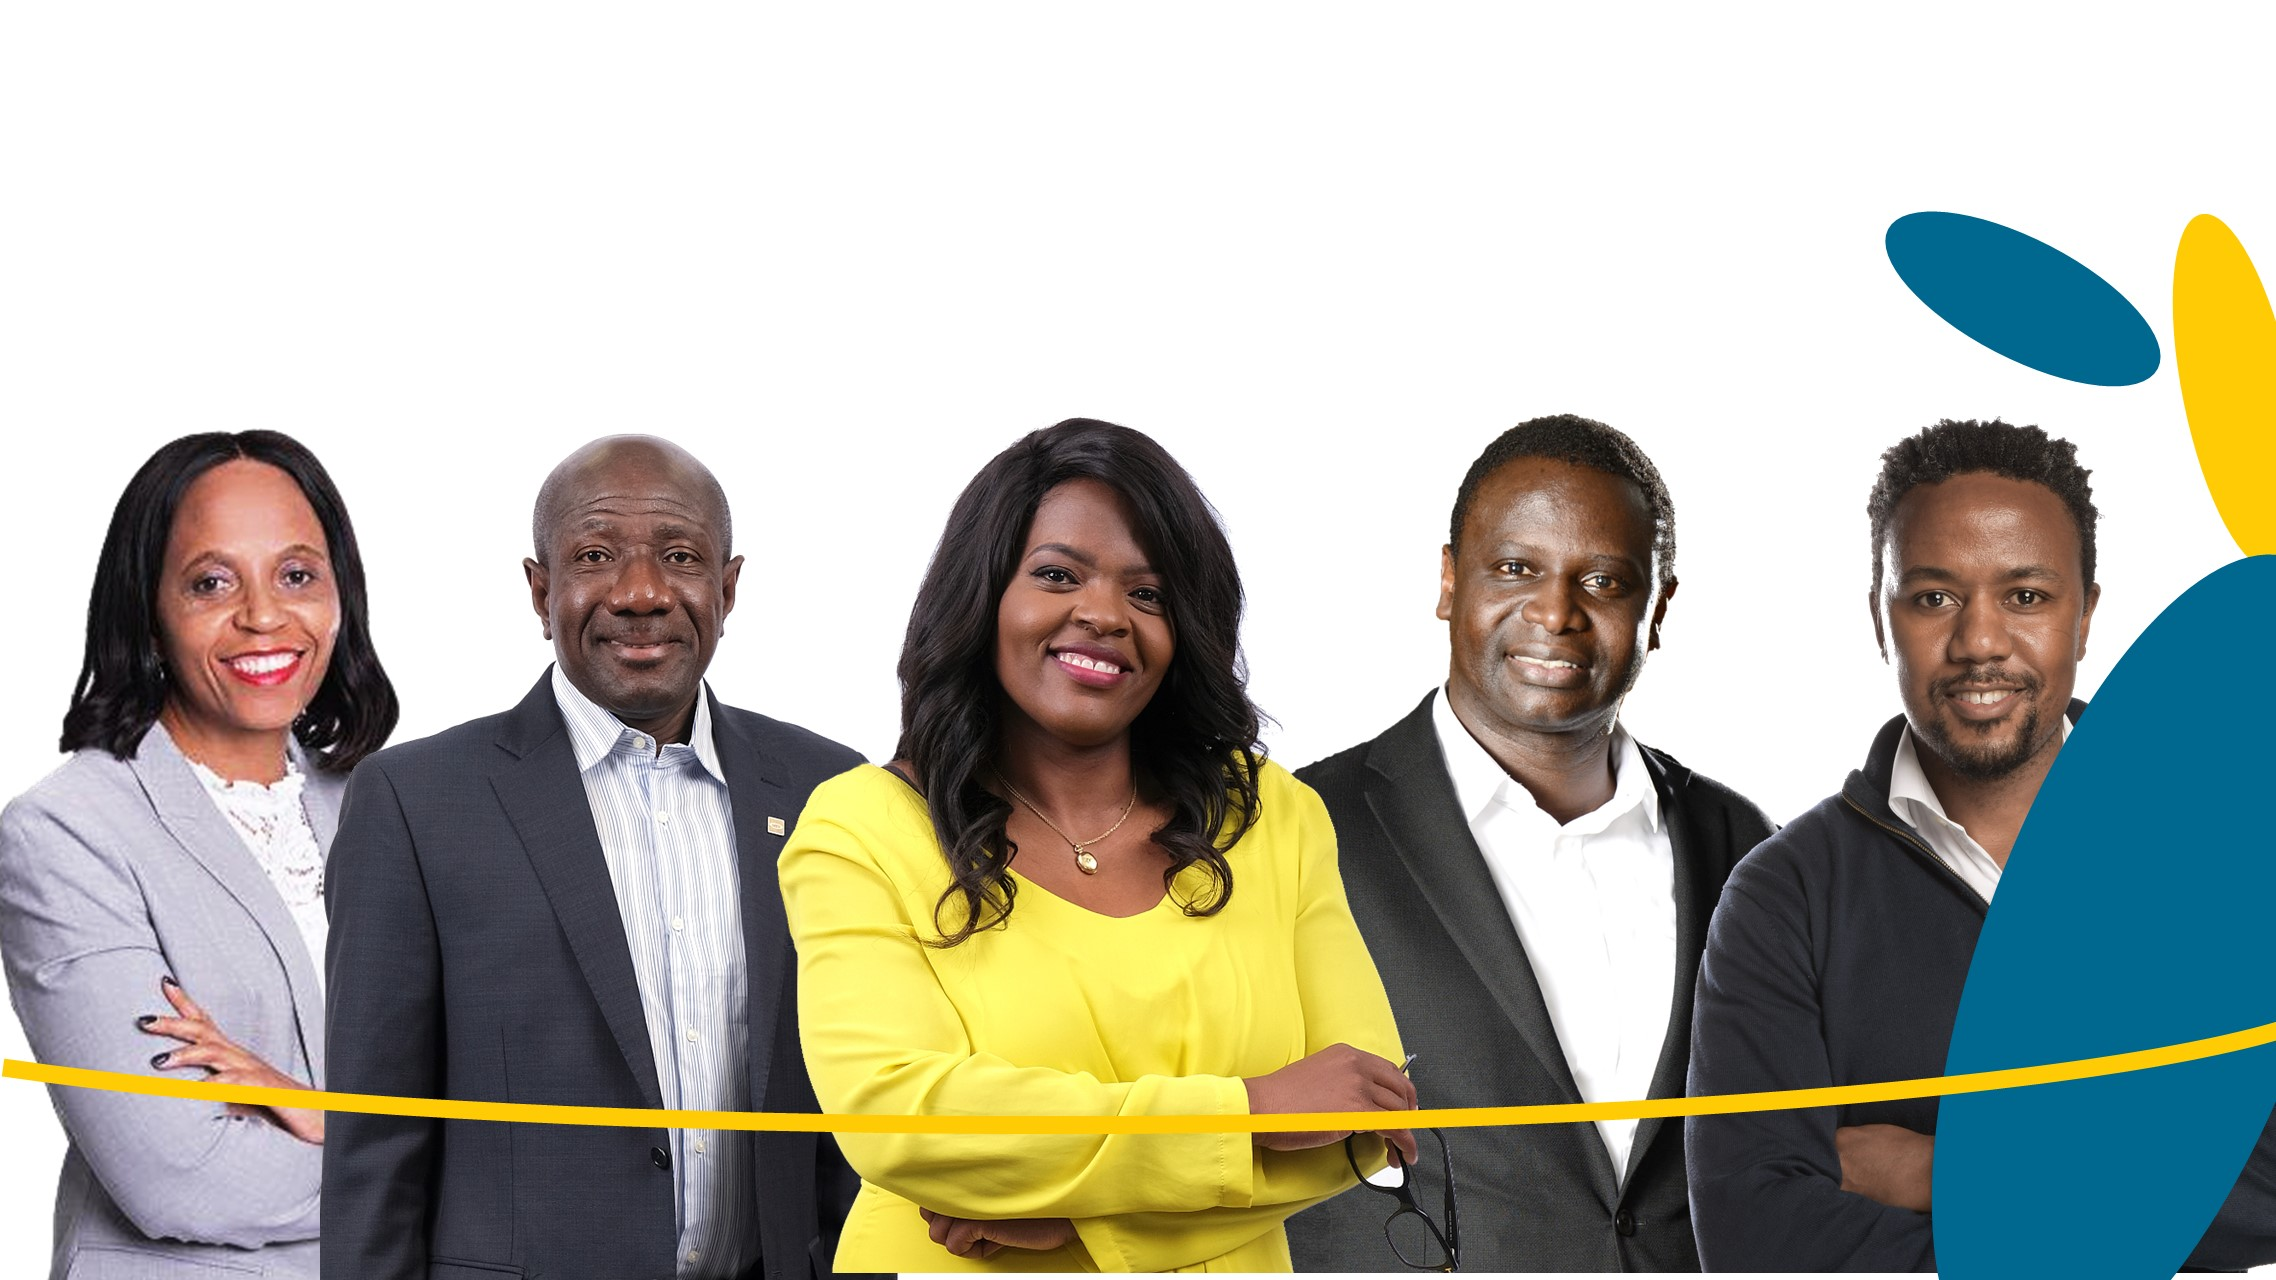 MTN appoints new Group CFO, announces changes to regional structure and to the Group Executive Committee